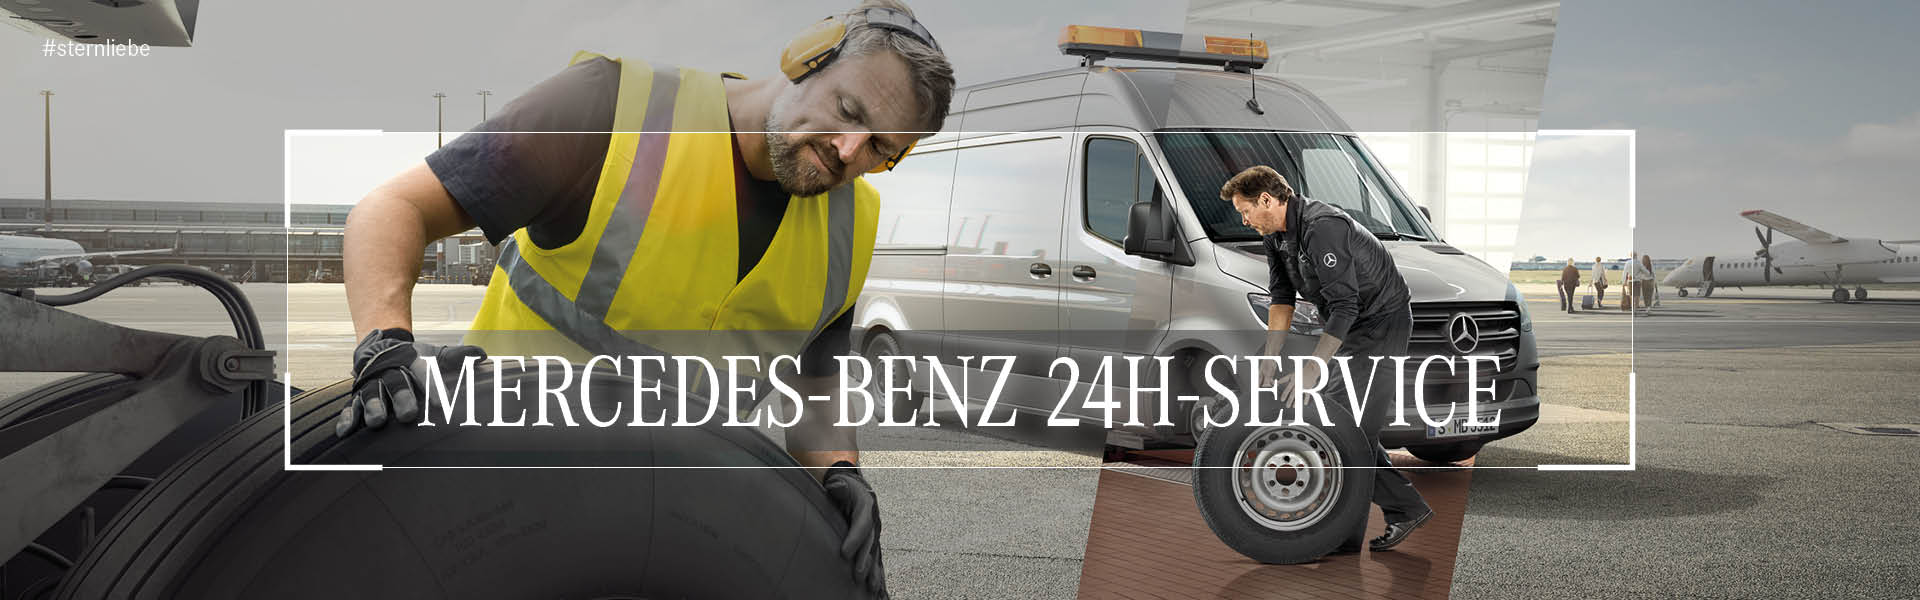 MB-24hService